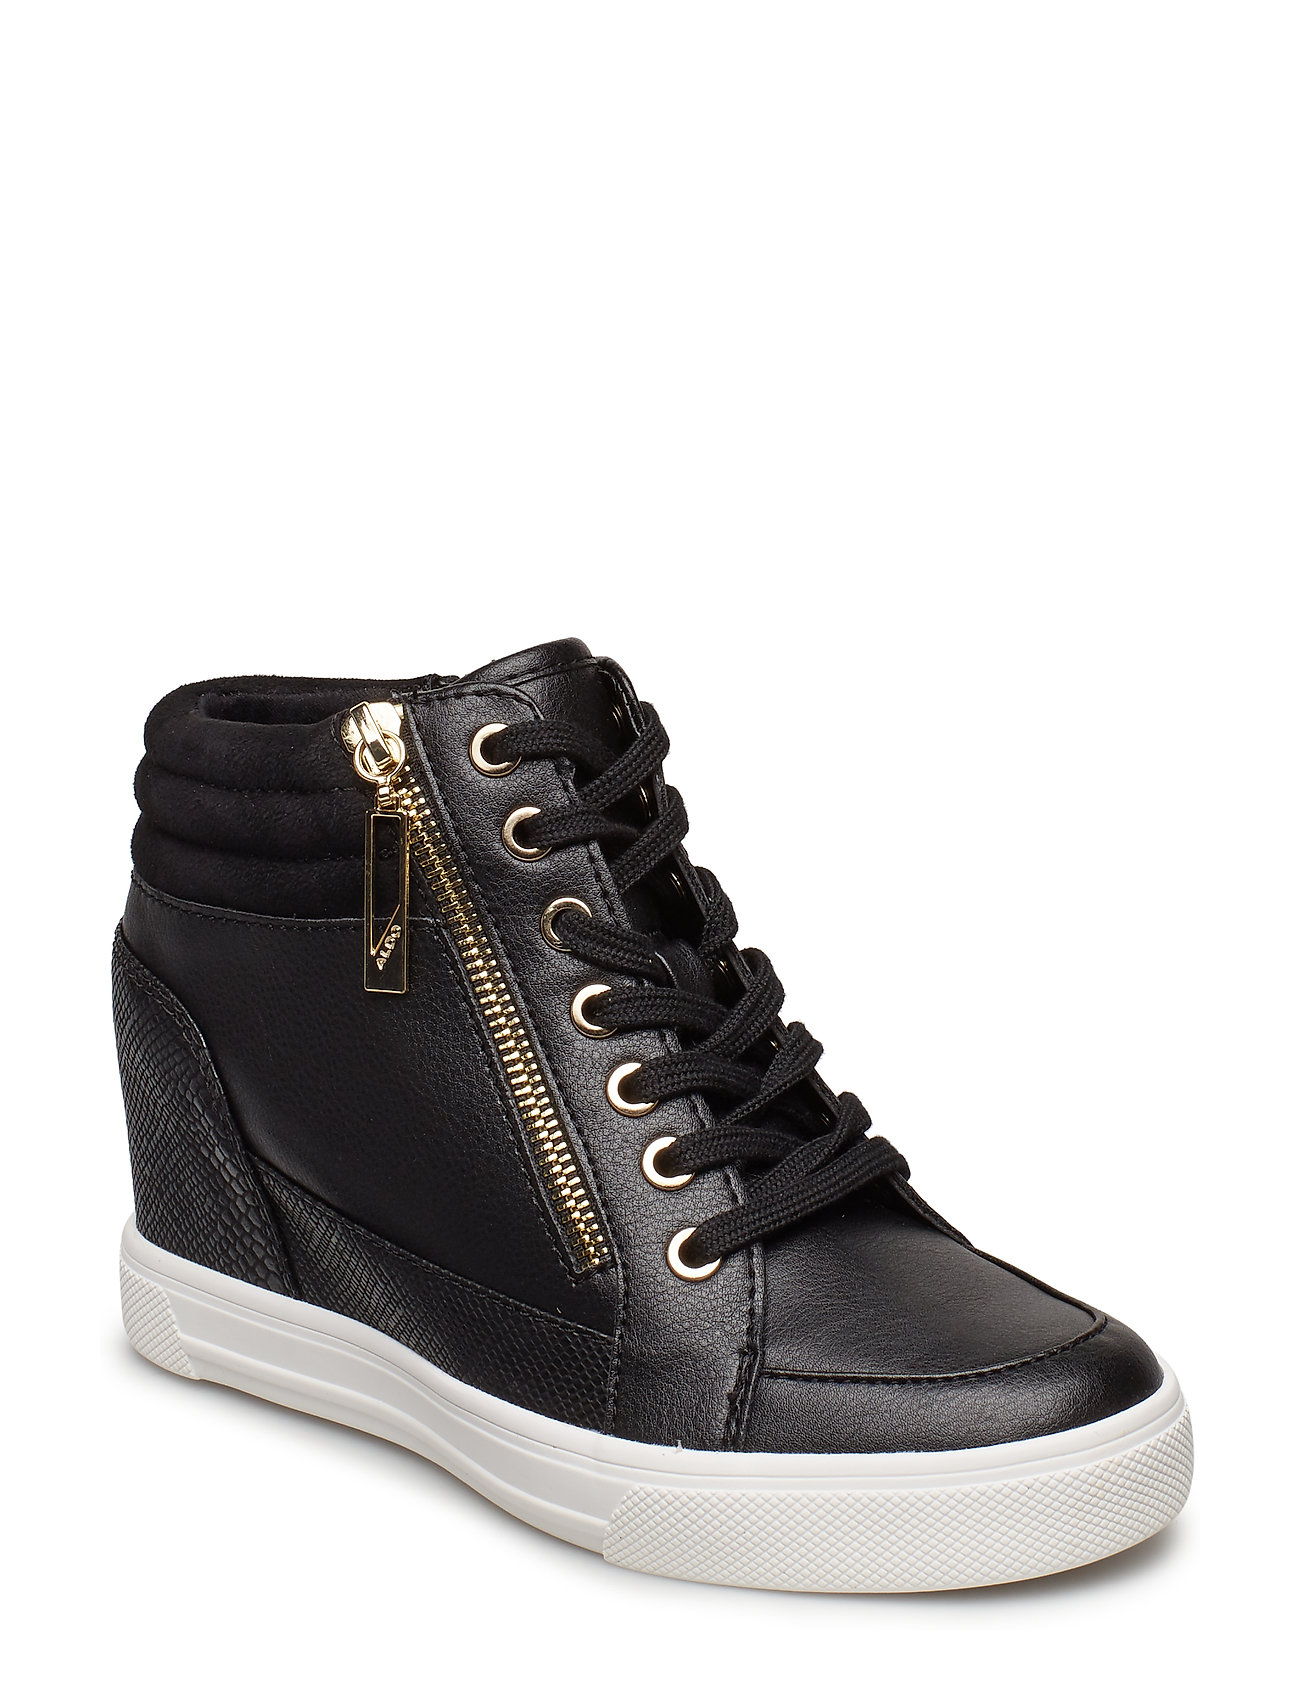 ALDO AELADDA - Sneakers high - black